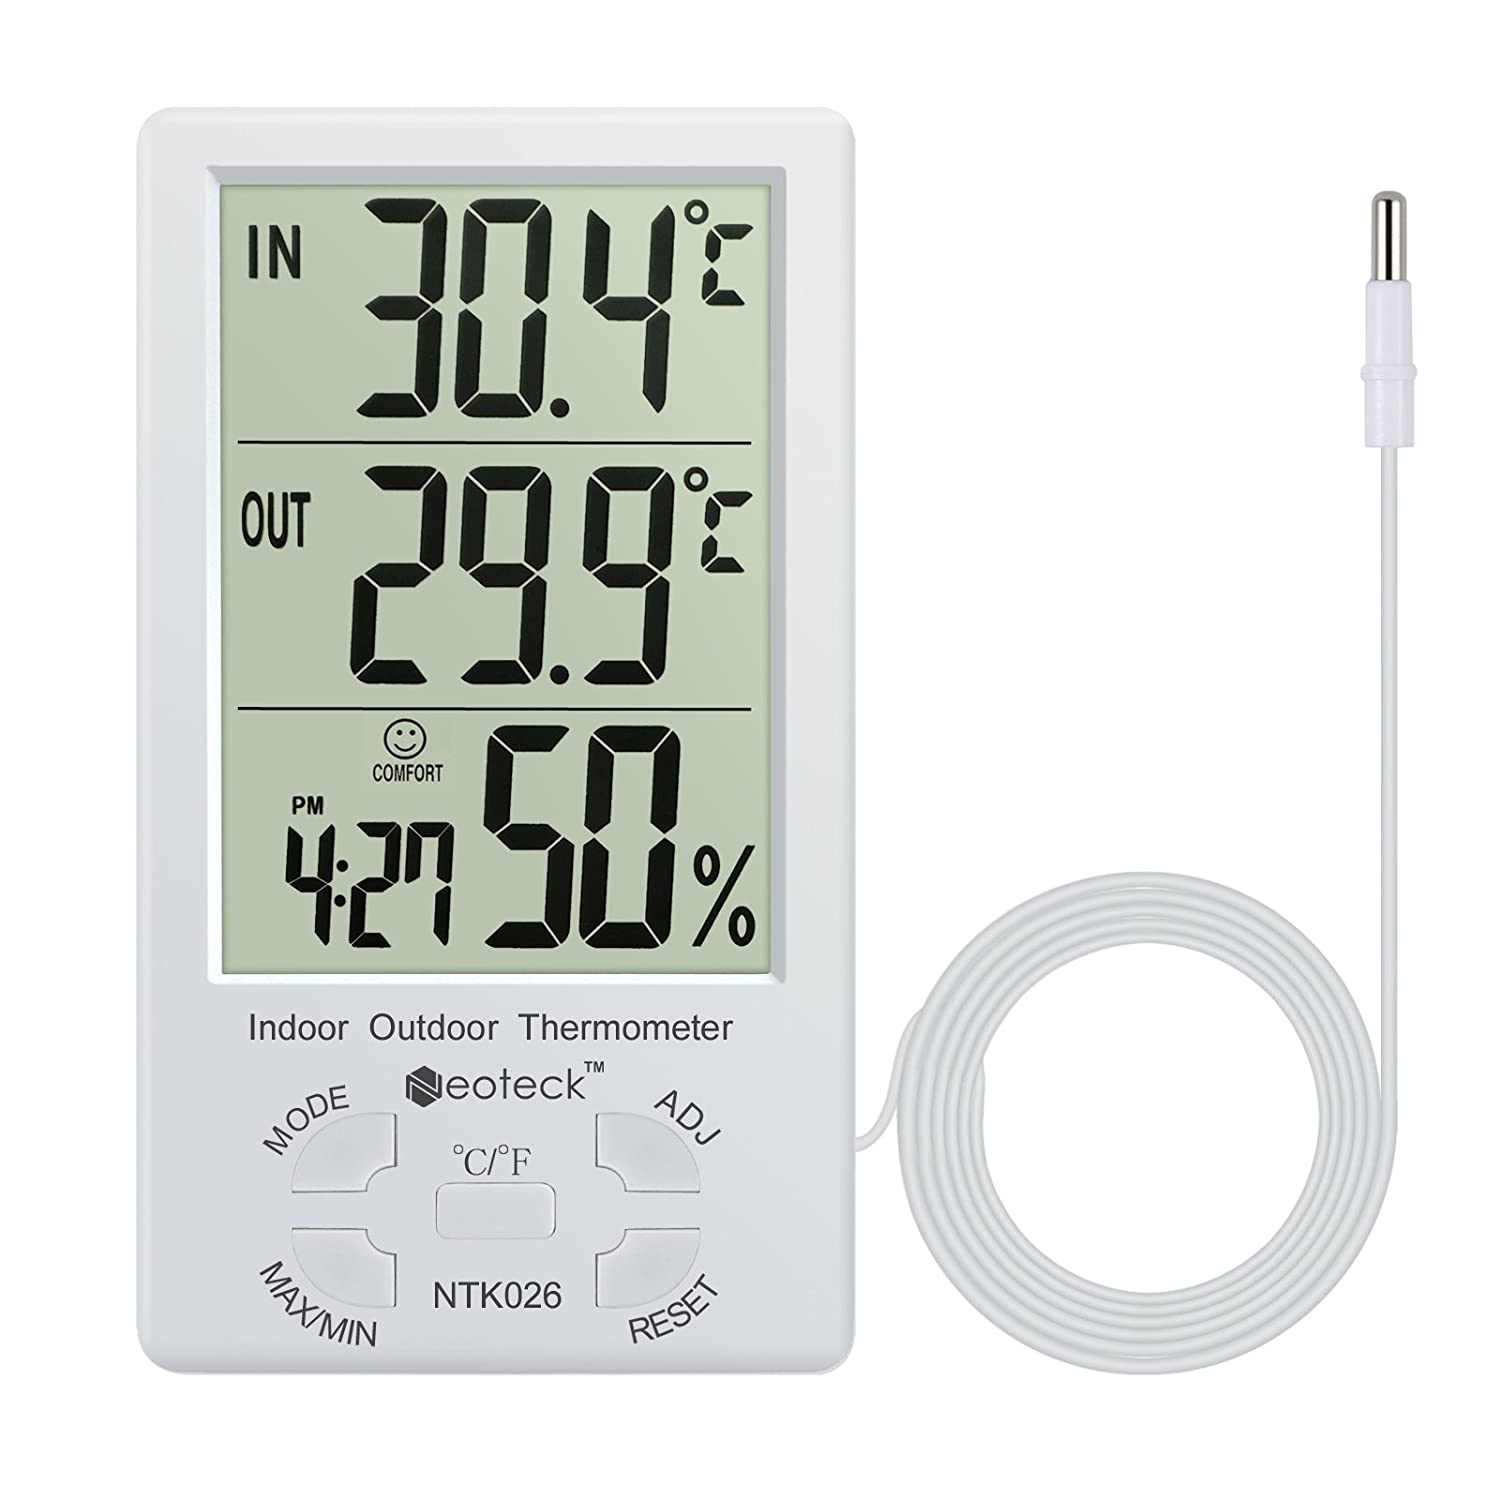 Digital Thermometer Neoteck 2 in 1 Hygrometer Temperature Meter Accuracy Temperature & Humidity with Large LCD Display 1.5m Sensor Wire Manage Air Condition for Indoor Outdoor Use NTK026